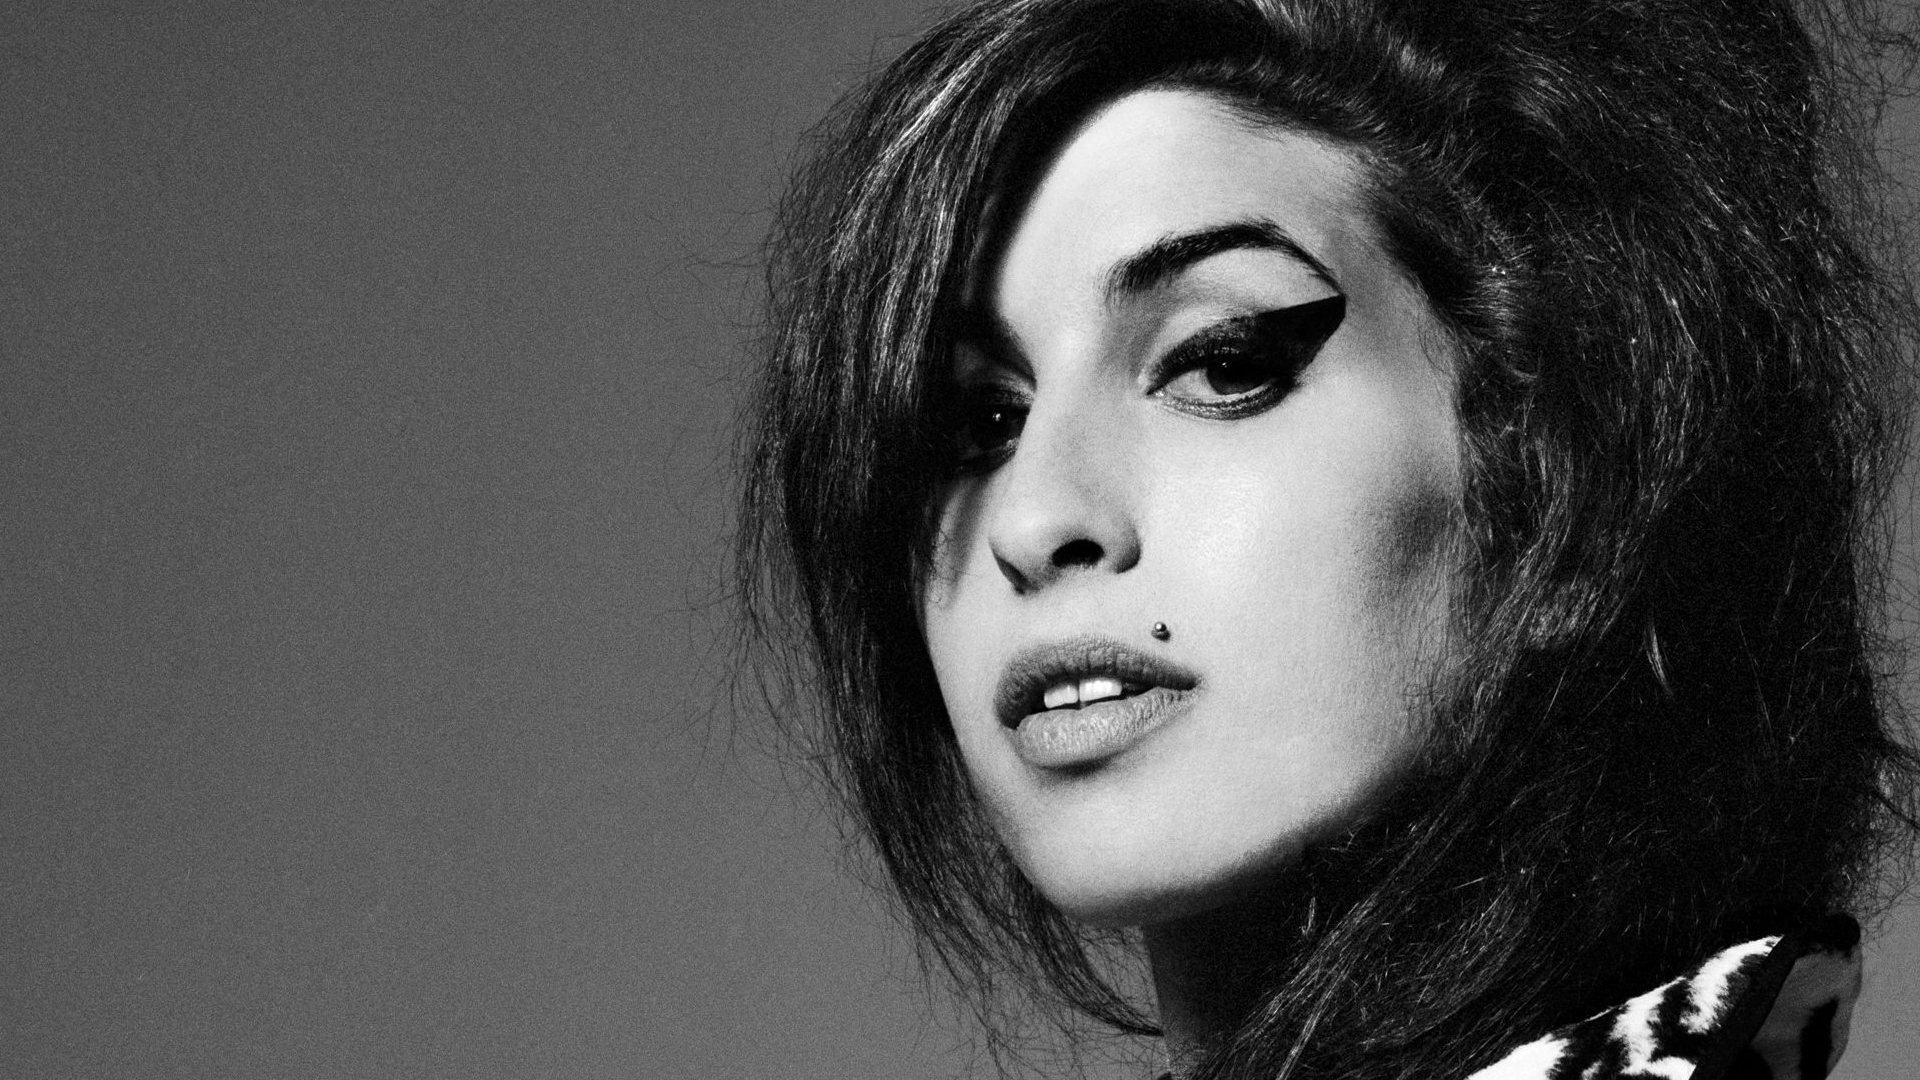 Today saw the release of the first trailer for the highly anticipated documentary Amy, which concerns the life of tragic singing sensation Amy Winehouse.